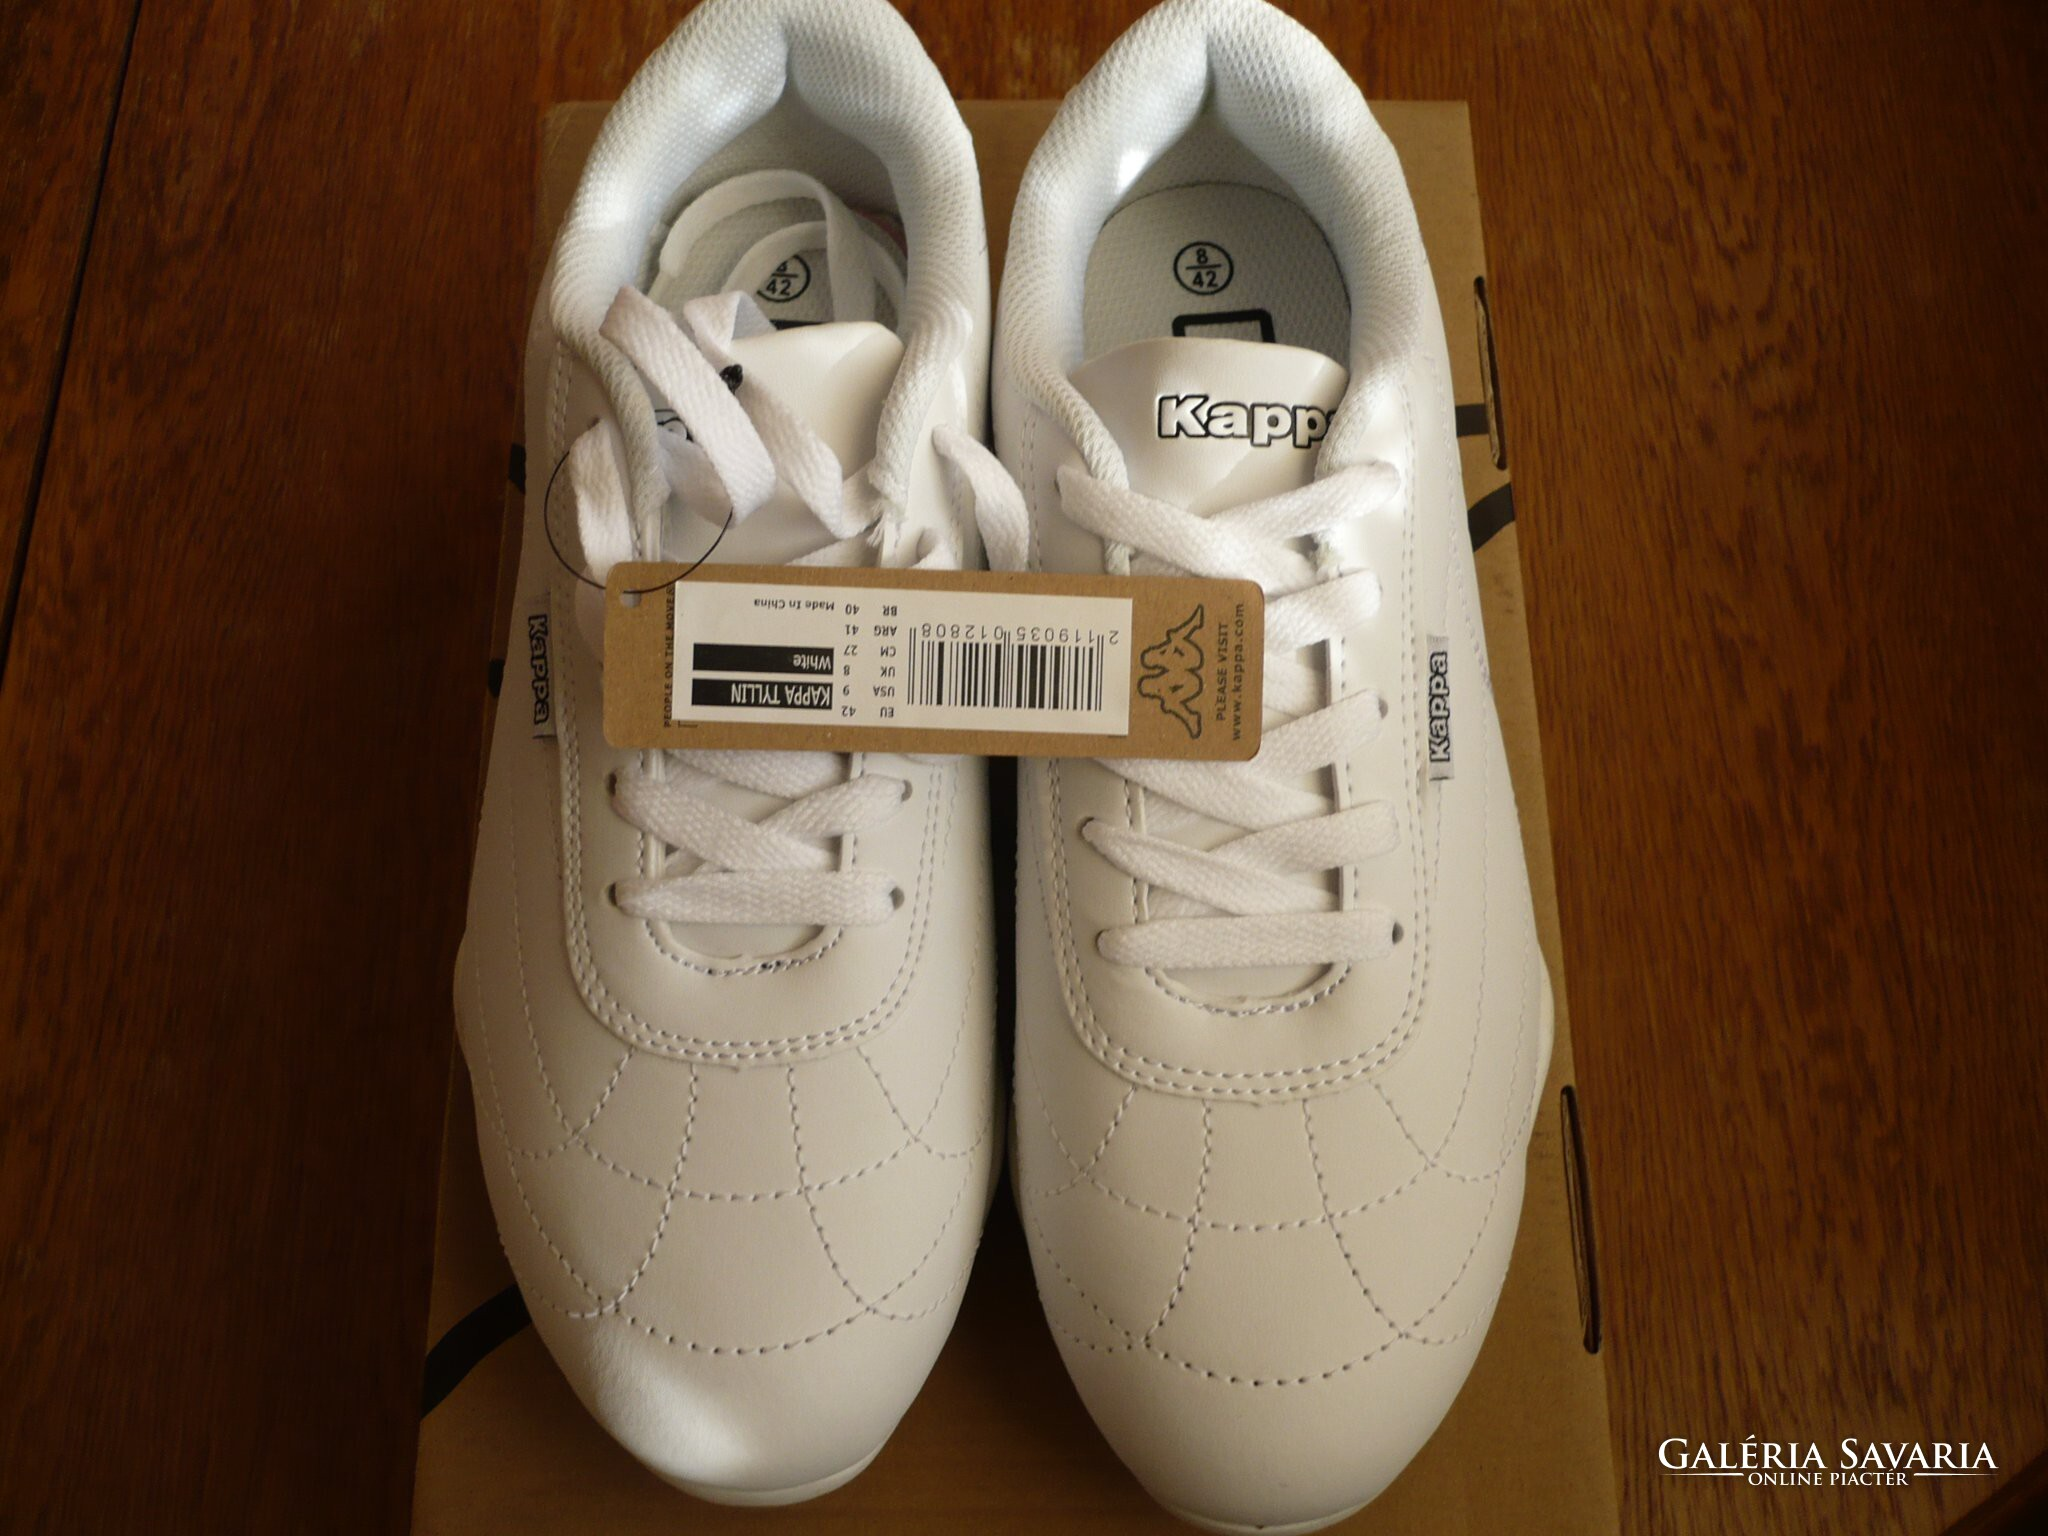 d60a94c3cd Kappa men's sports shoes in their original packaging - Wardrobe ...